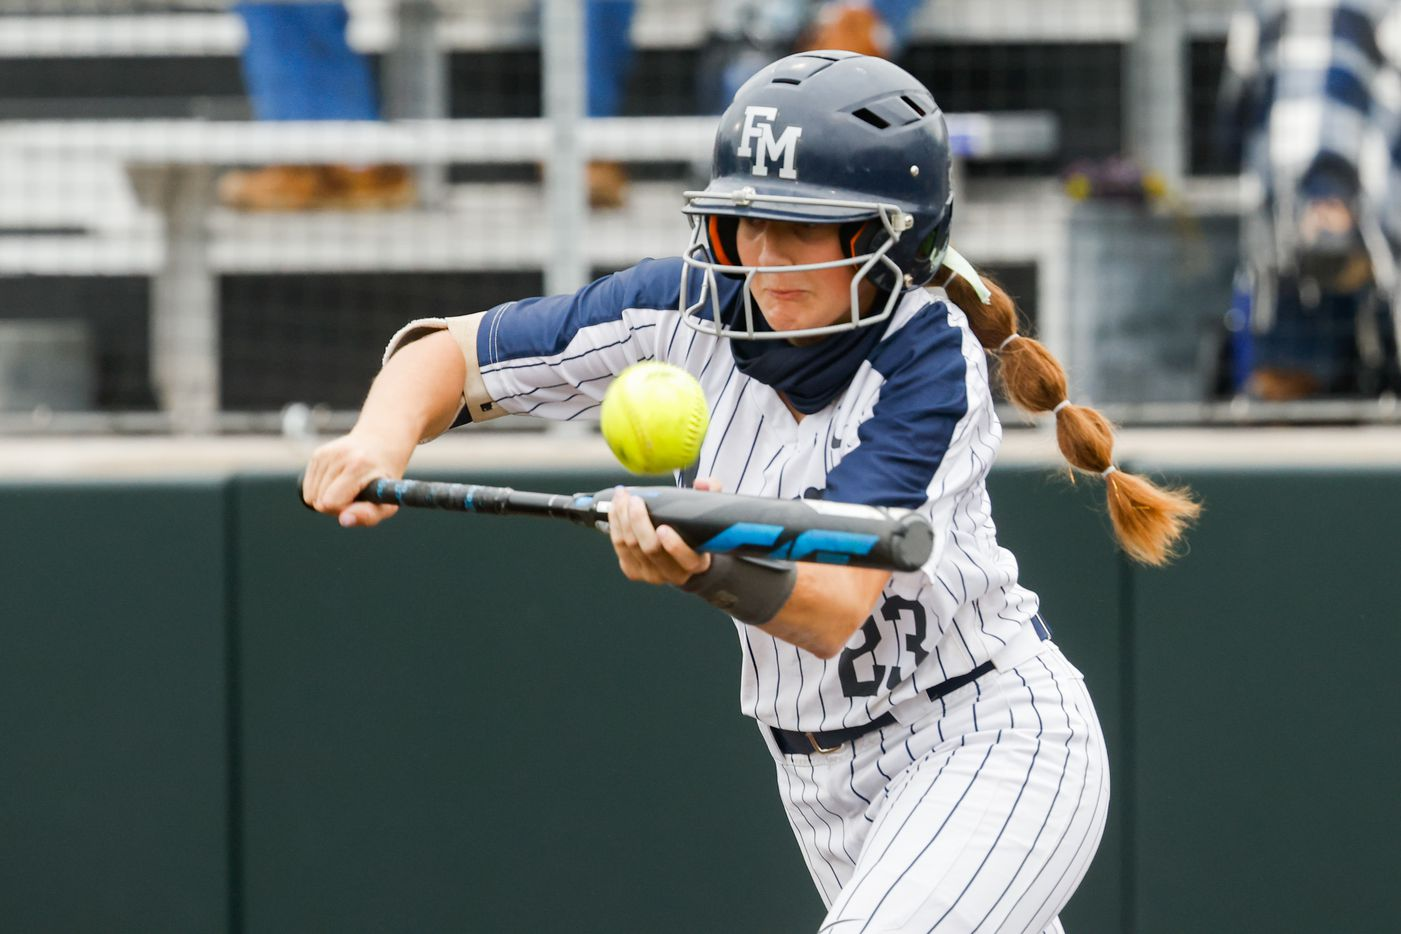 Flower Mound's Courtney Cogbill (23) hits the ball against McKinney Boyd during the first inning of a Class 6A bi-district playoff game on Friday, April 30, 2021, in Denton. (Juan Figueroa/The Dallas Morning News)